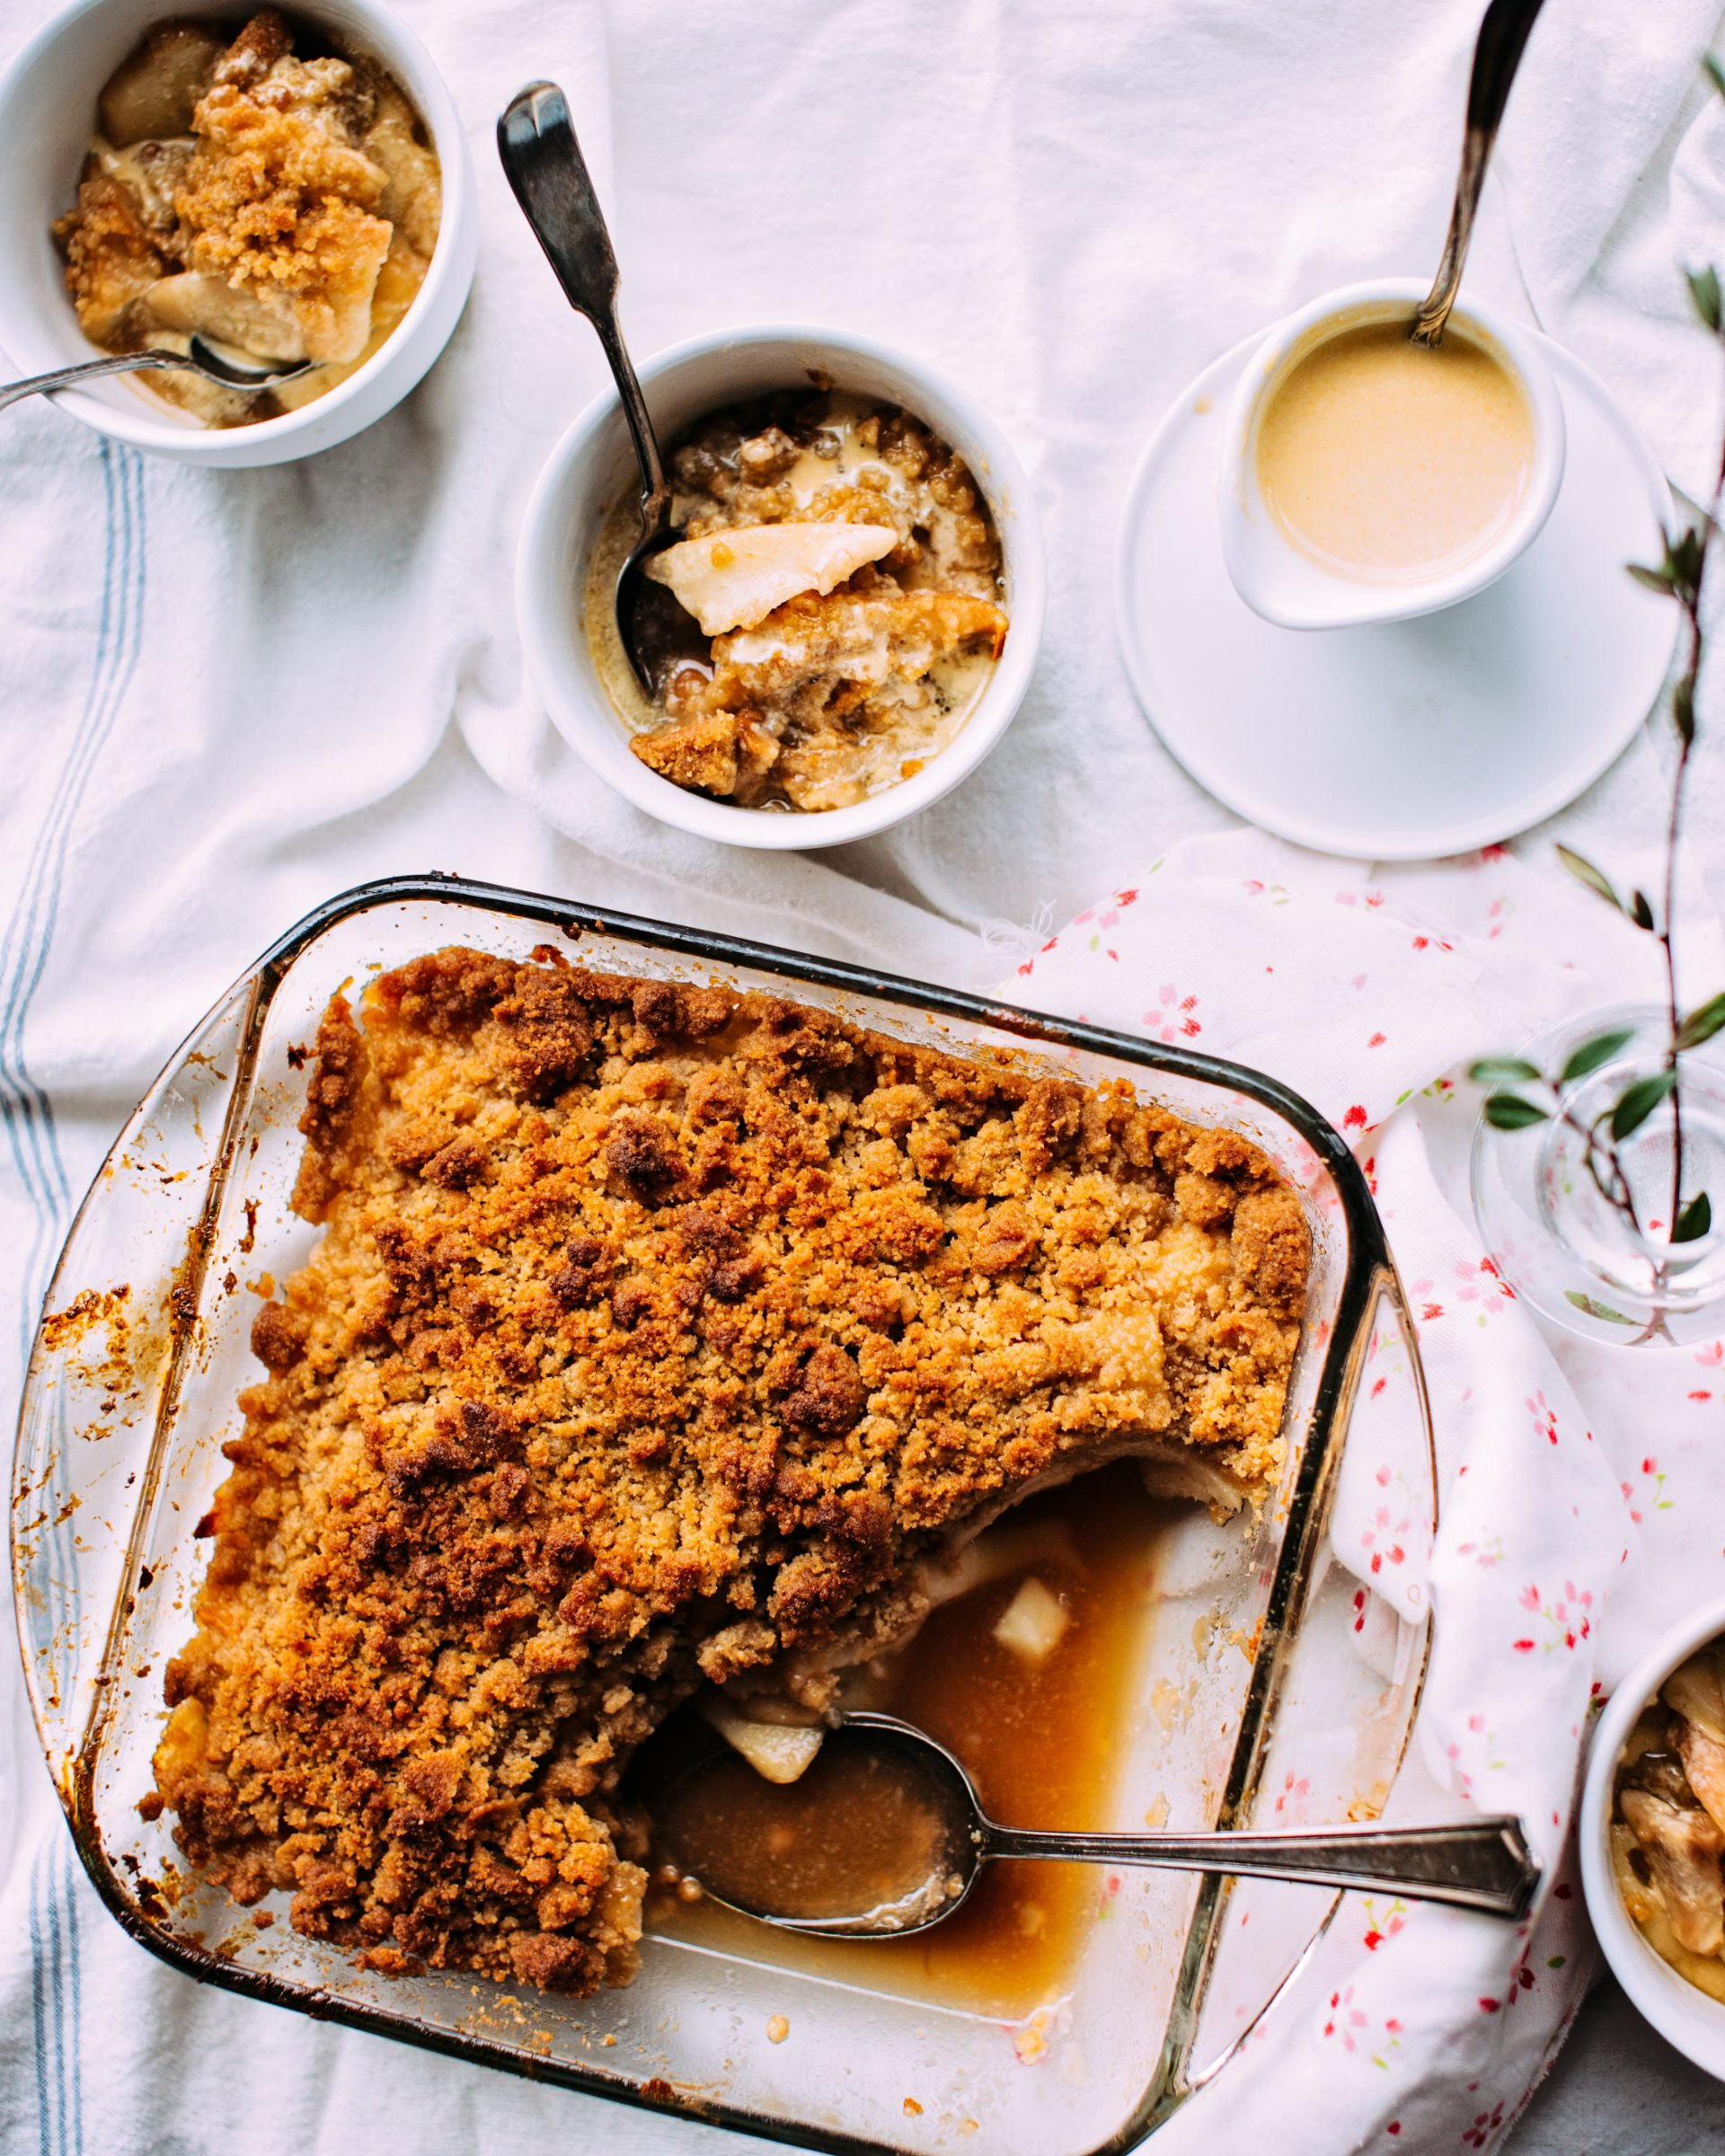 Glad yourself and your loved ones - bake a pie with pears or kiwi